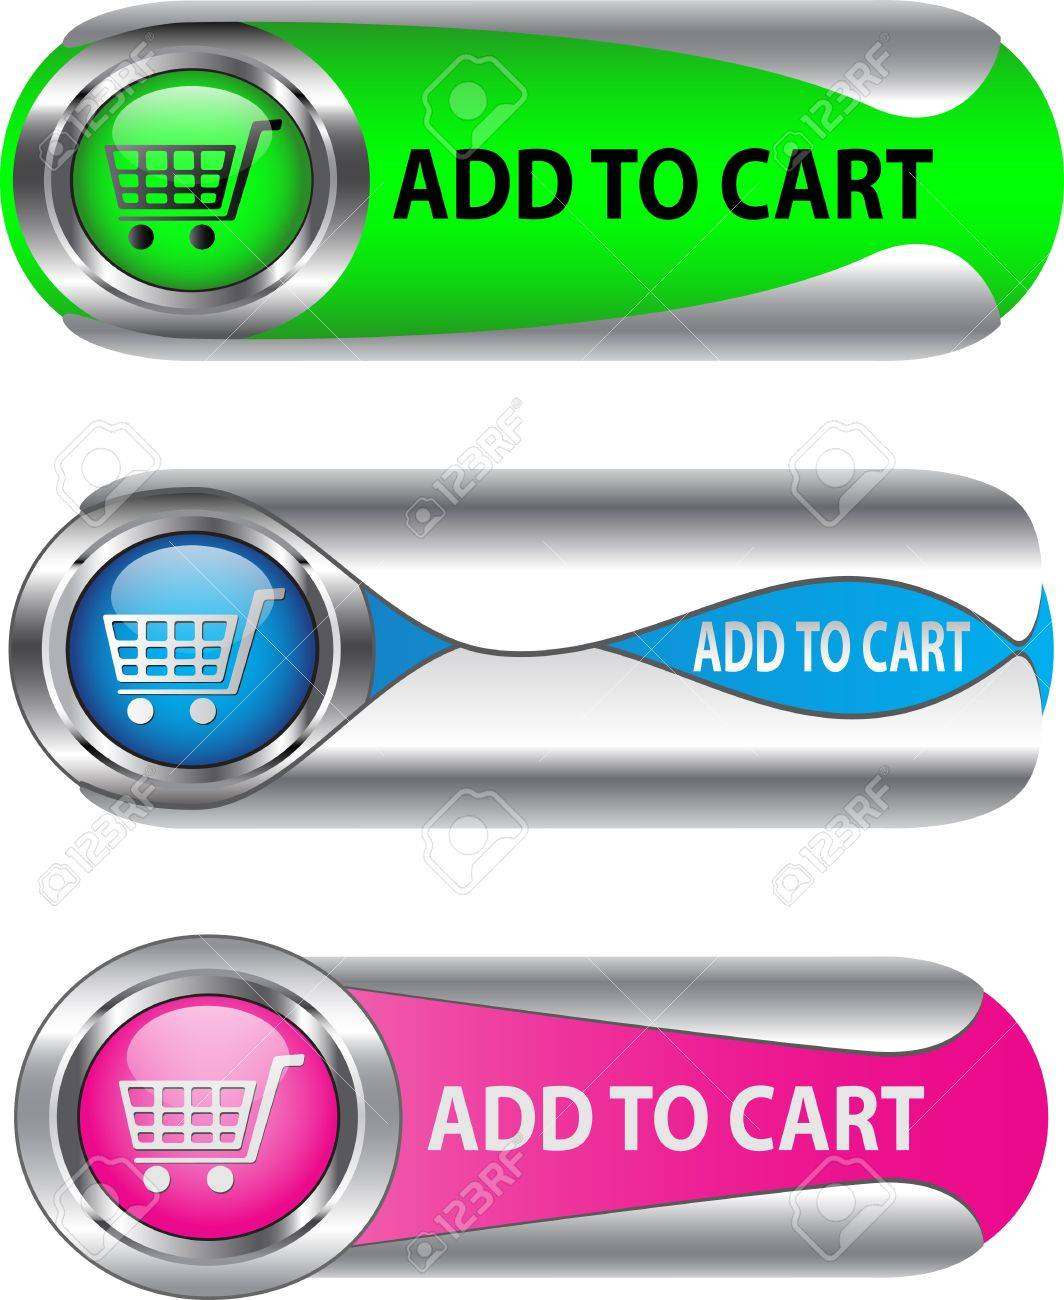 Metallic Add To Cart button/icon set for web applications. Stock Vector - 12367948